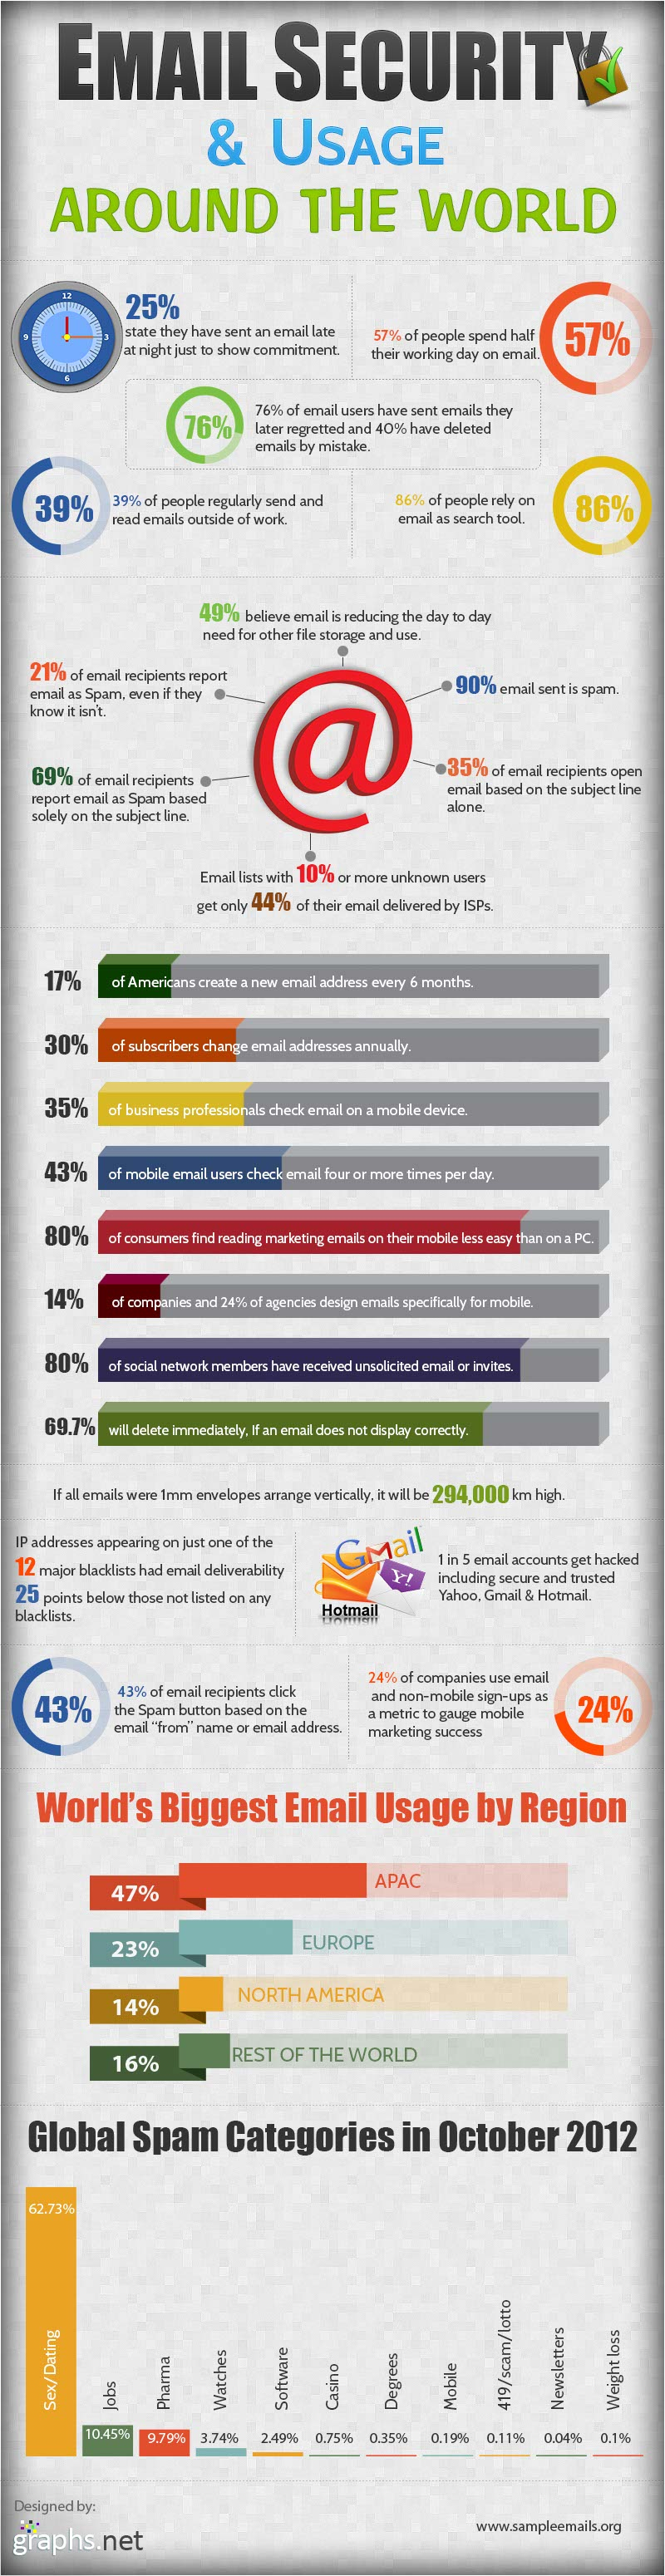 eMail Usage 2012-Infographic